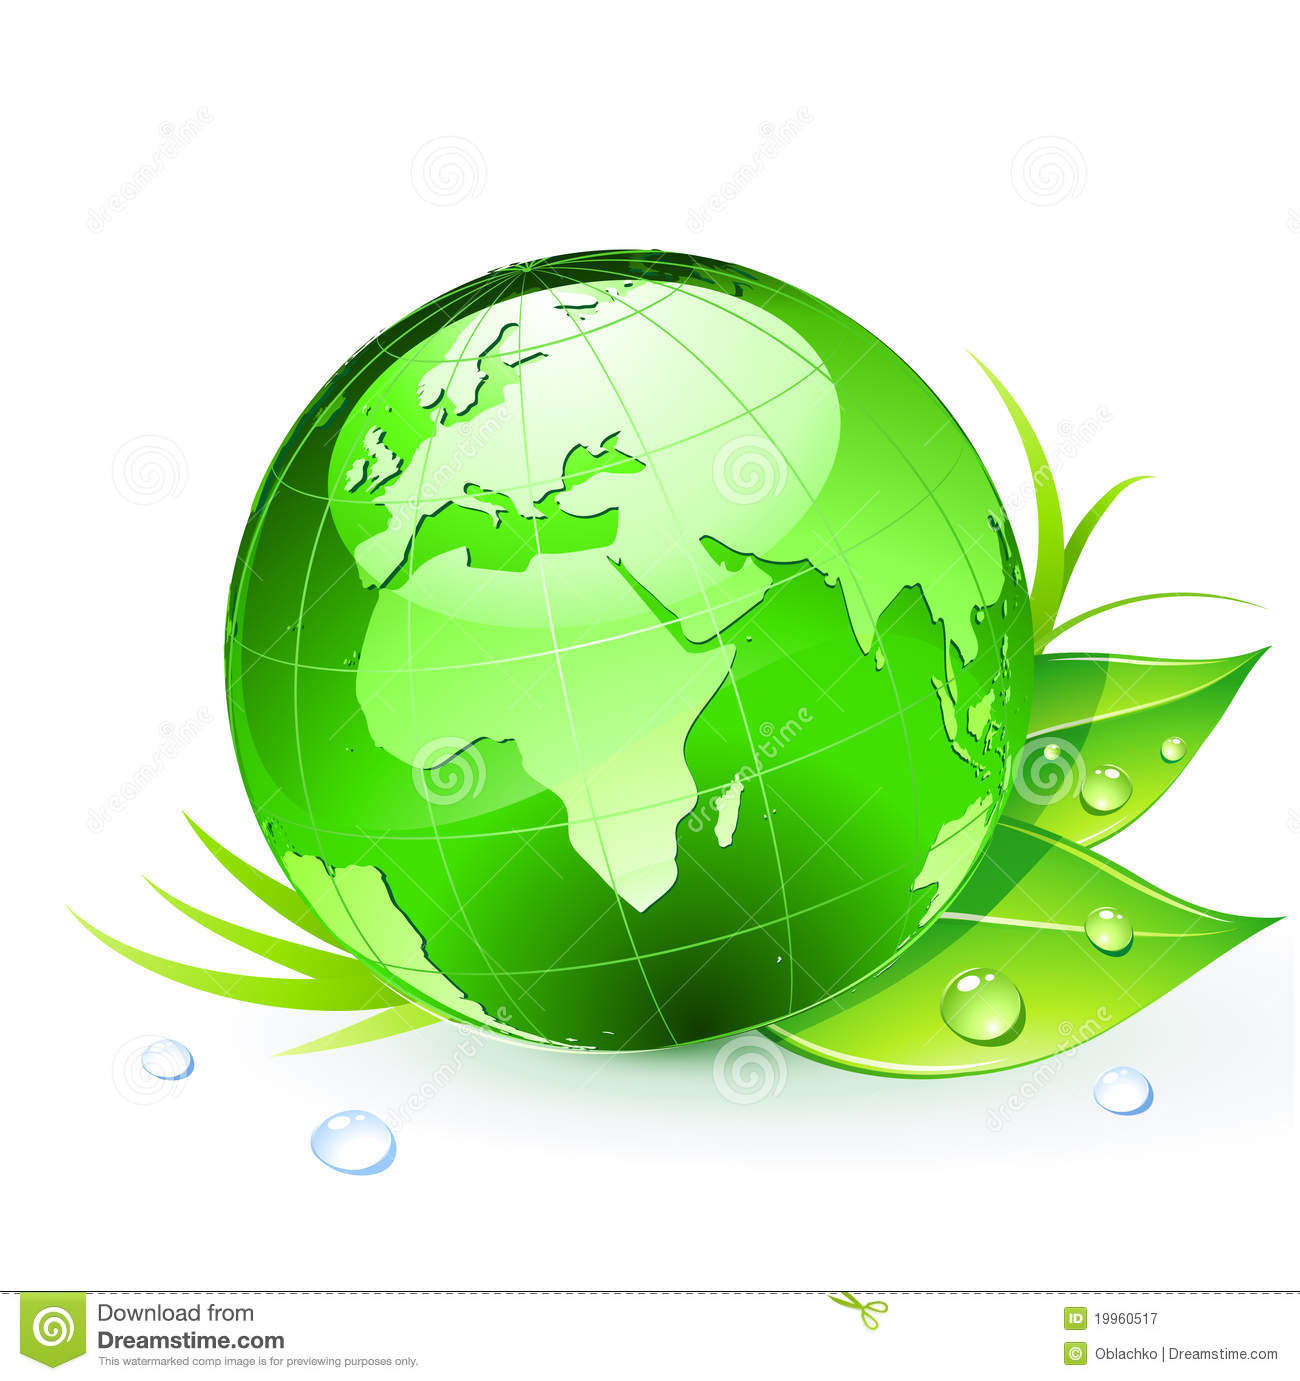 eart map with Royalty Free Stock Photography Green Earth Image19960517 on Watch further Pontianak furthermore G3400s1000c3 Index likewise Berkeley furthermore Alb istanbul.